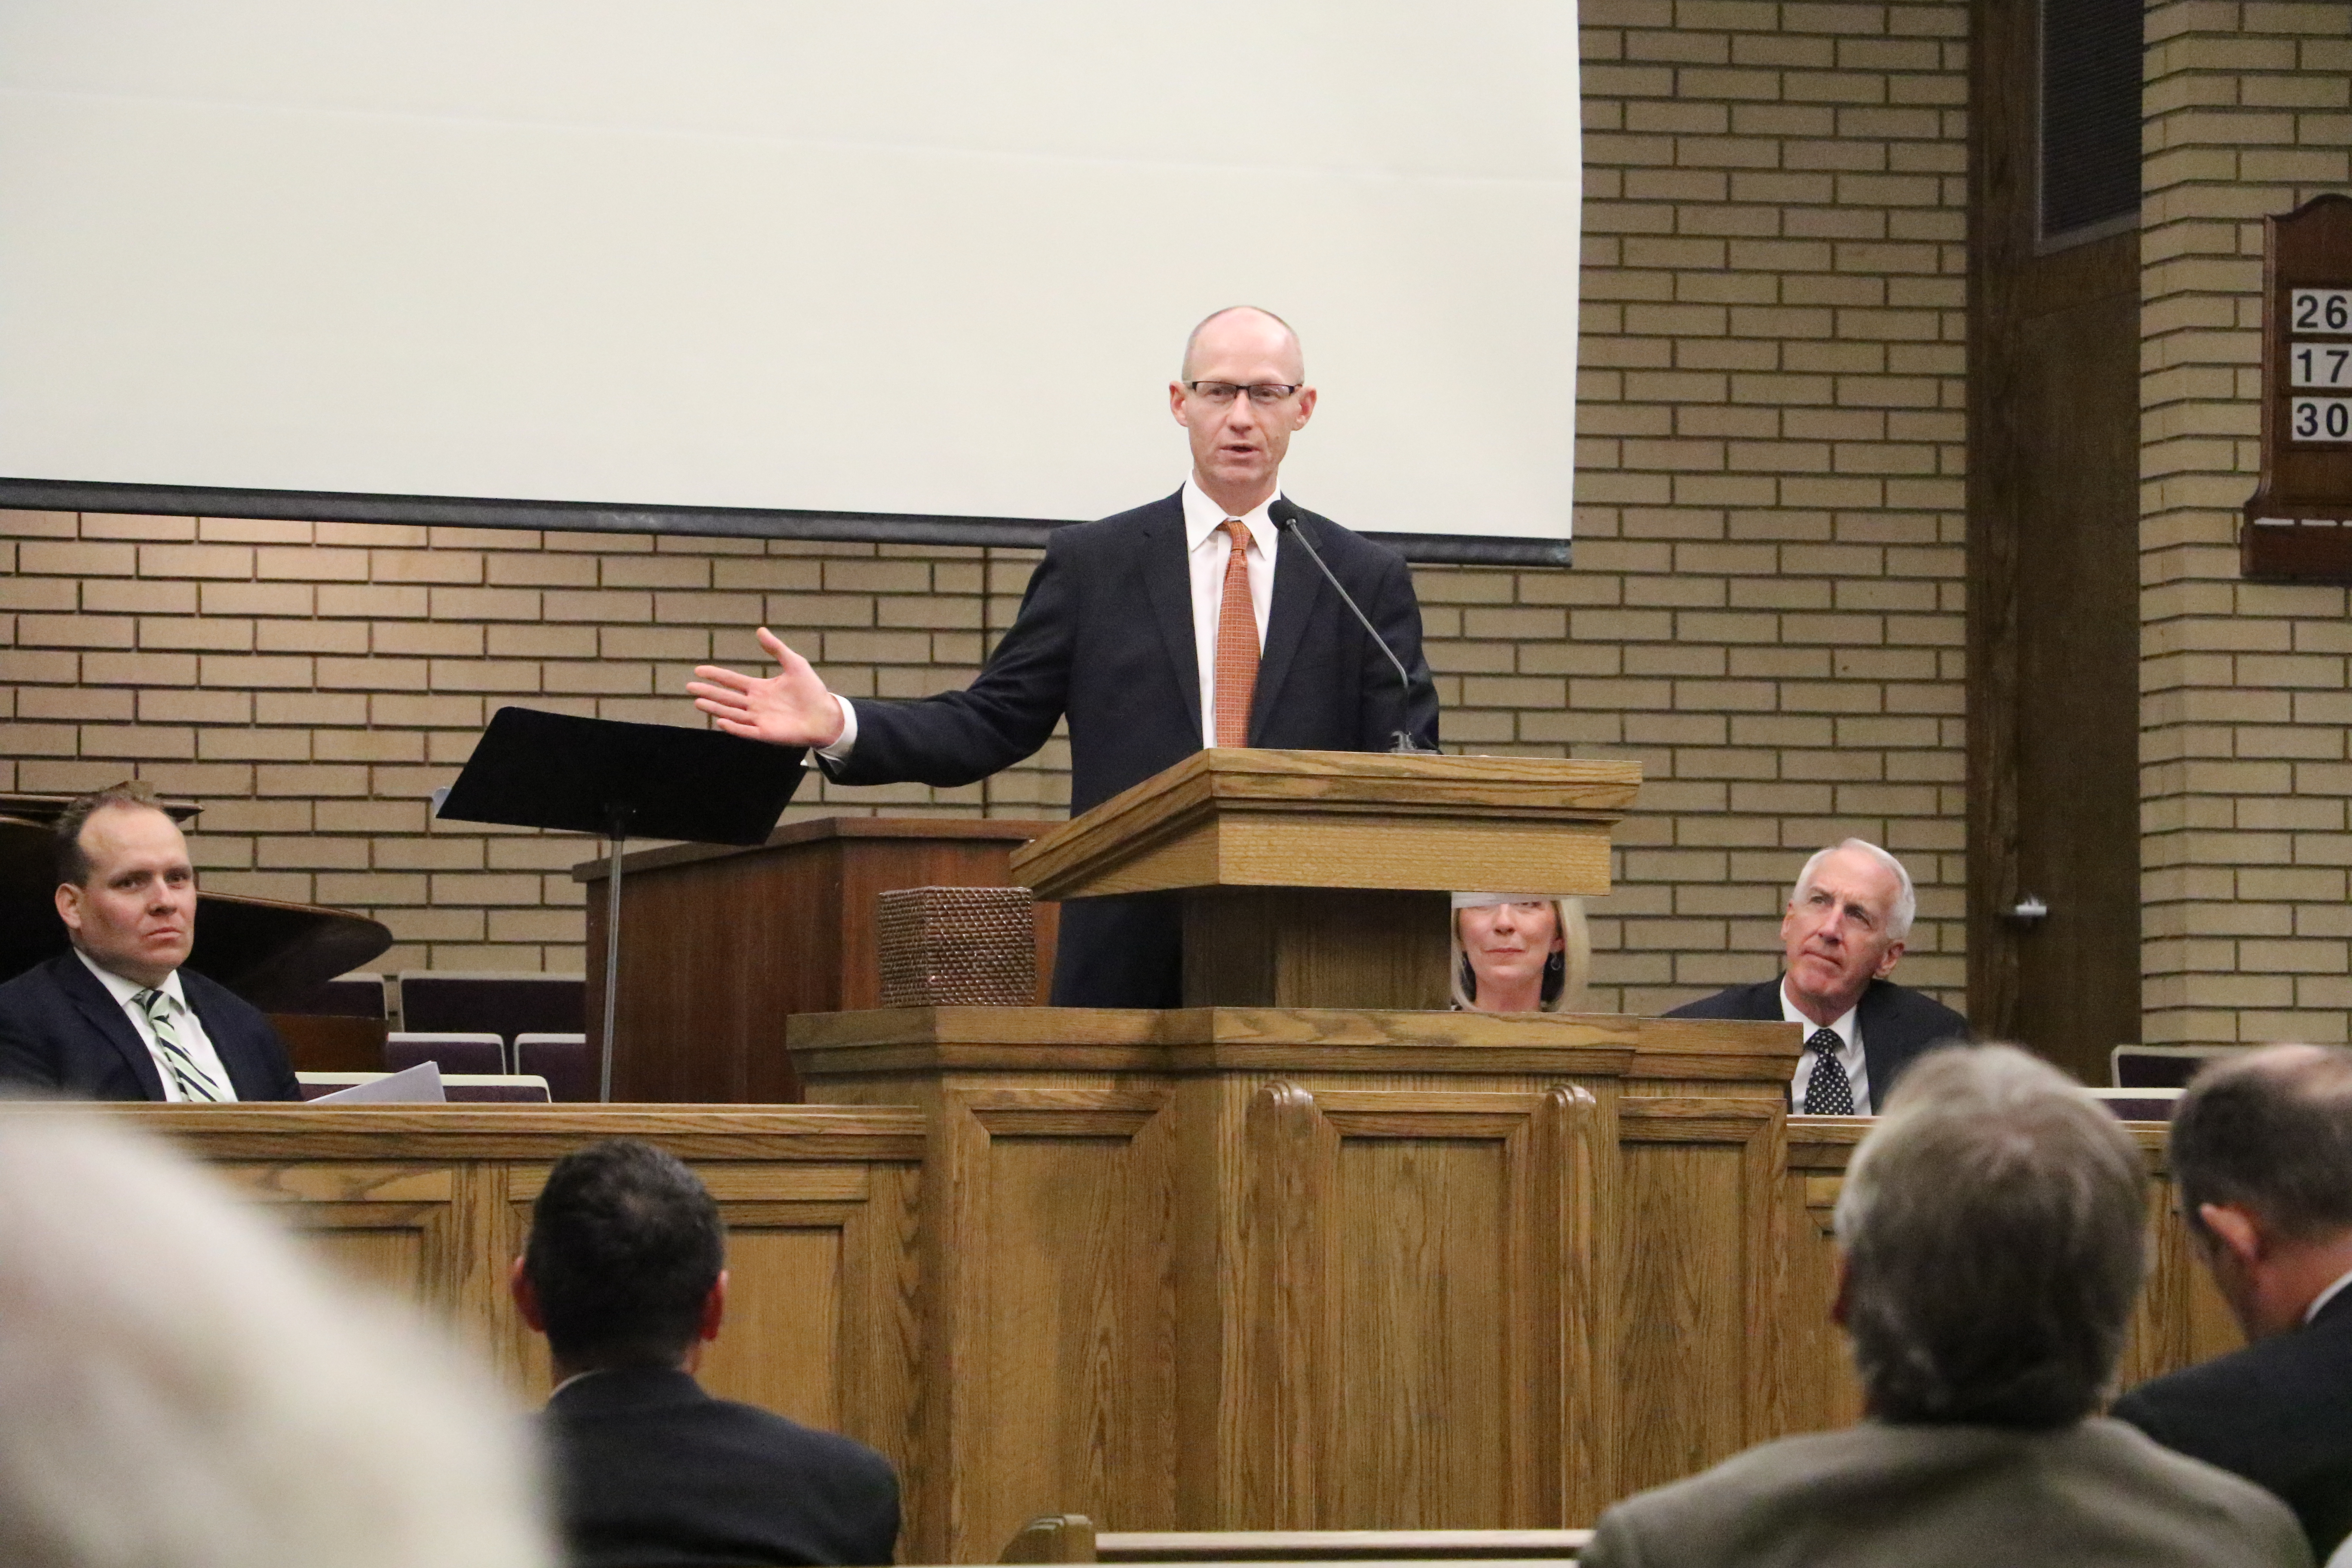 David D. Garner, a lawyer representing K-12 and post-secondary education institutions, speaks as part of a panel discussion following a devotional with Sister Joy D. Jones in Holladay, Utah, on Sept. 22, 2019.